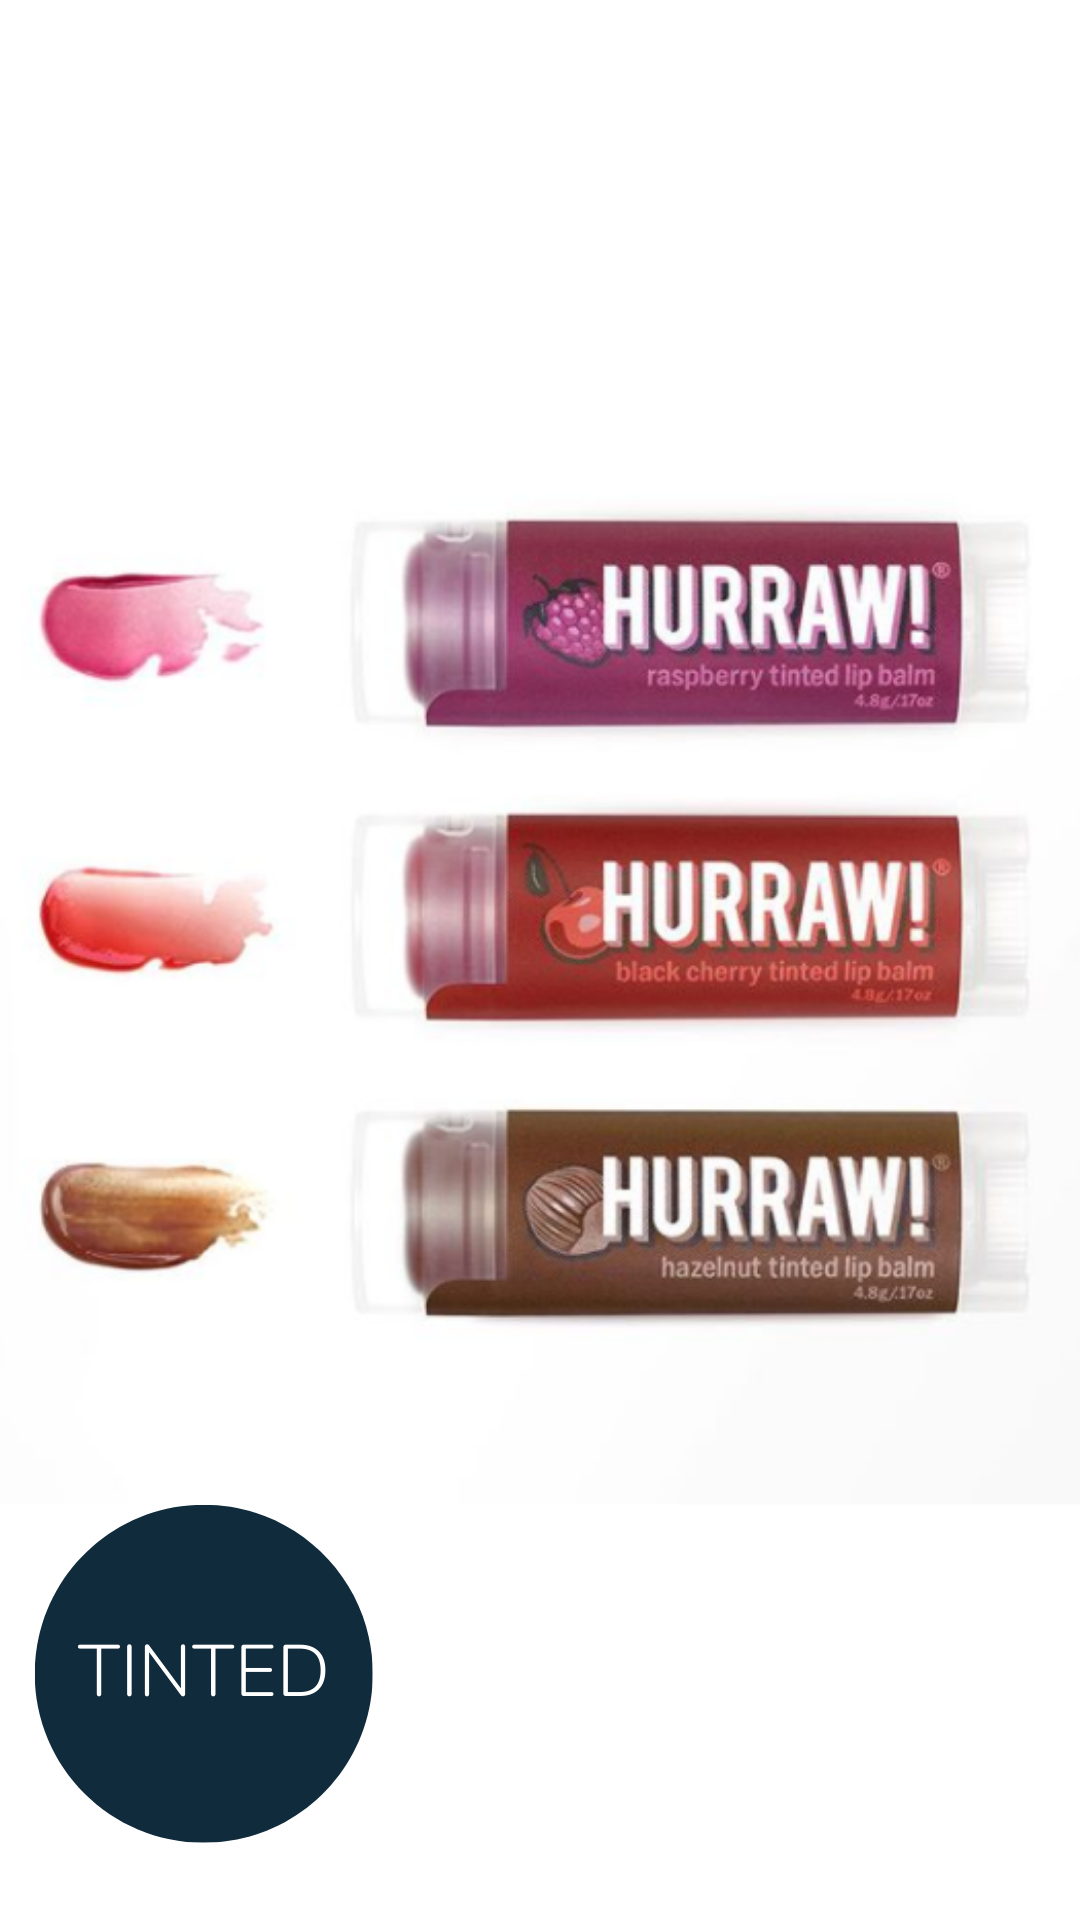 Hurraw tinted lip balm